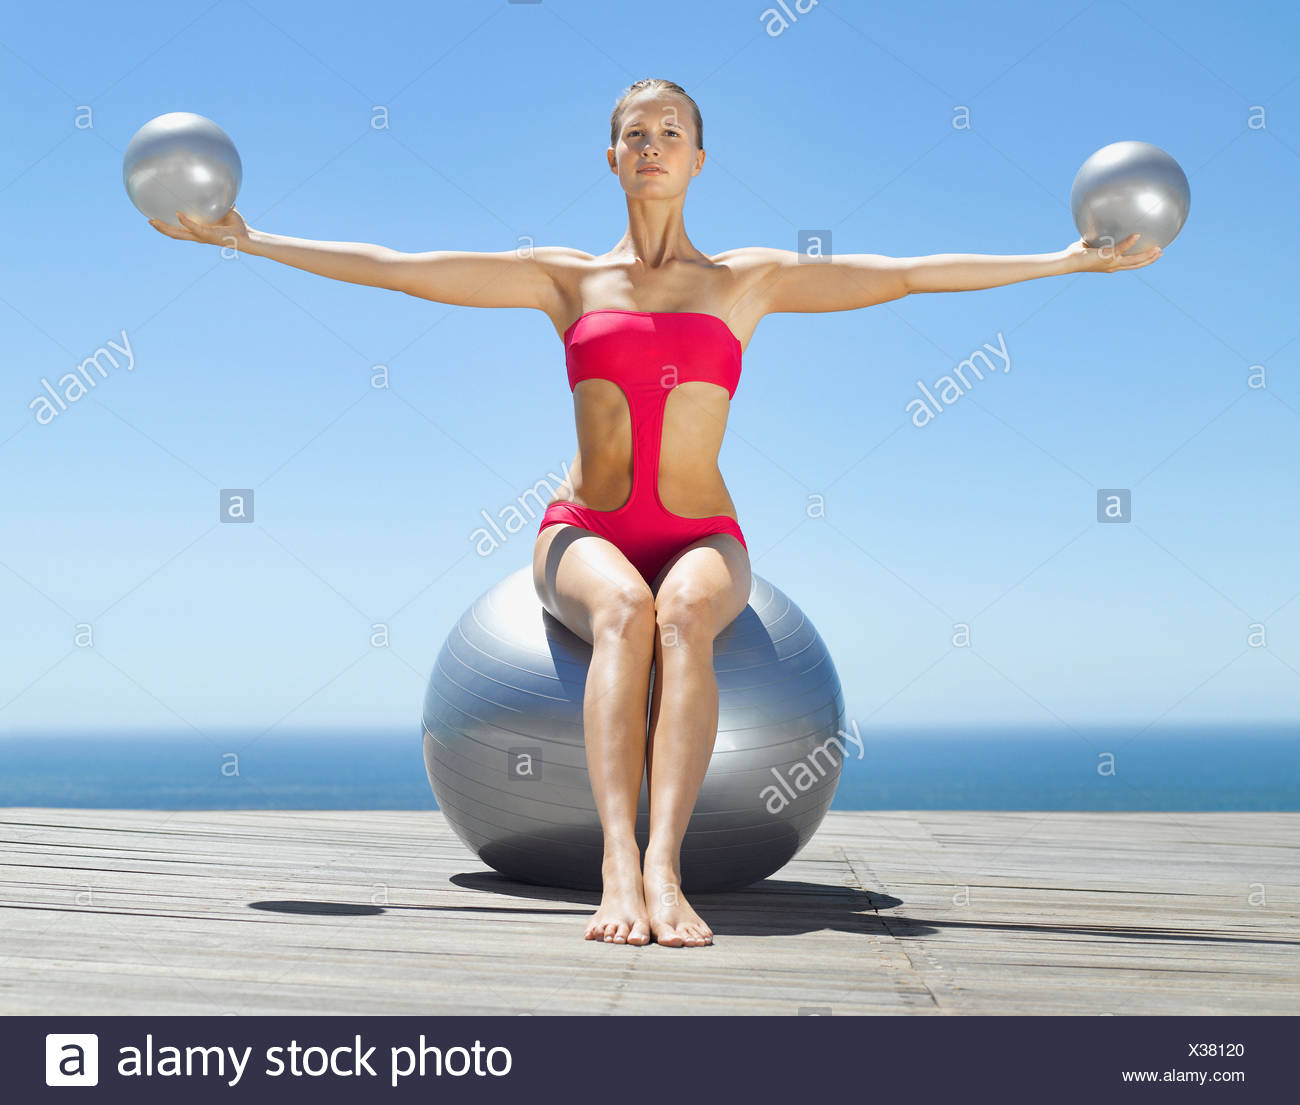 Woman working out with three exercise balls - Stock Image